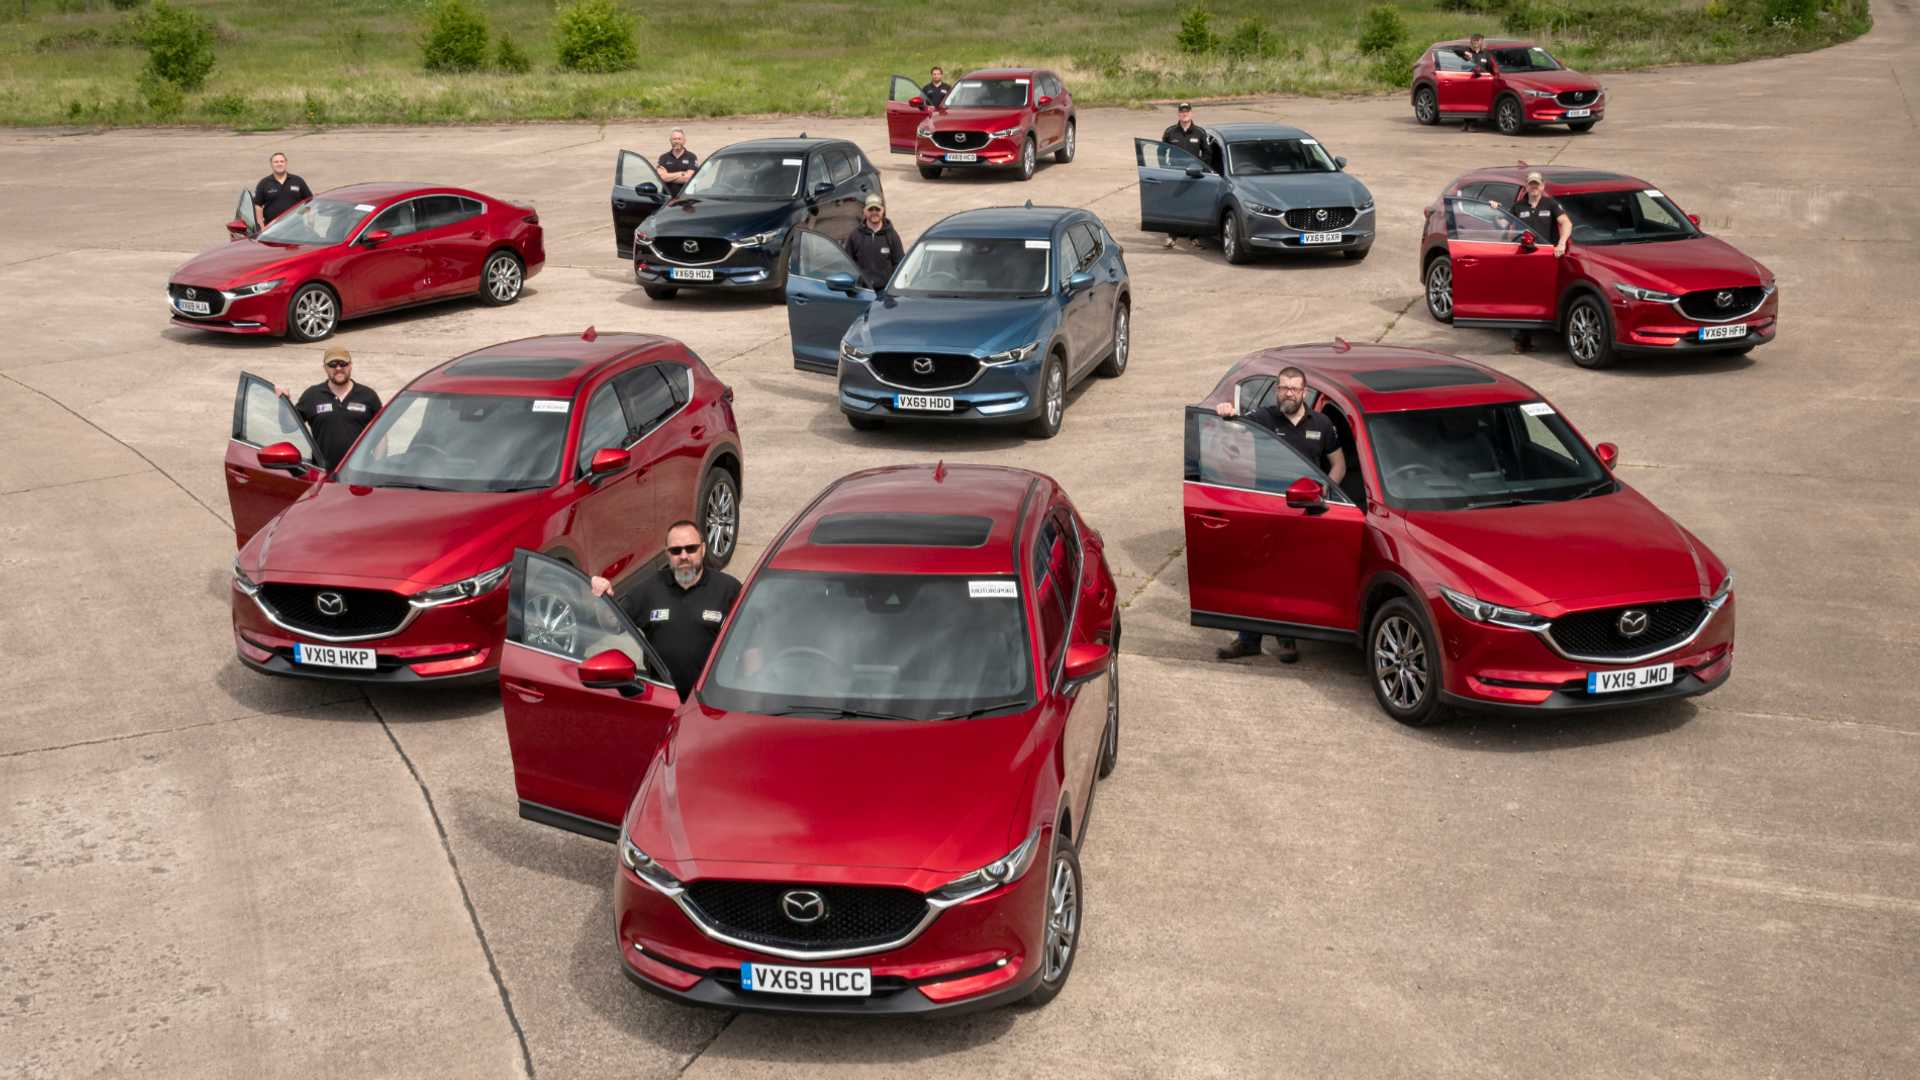 Mazda sends cars to disaster response charity as it battles Covid-19